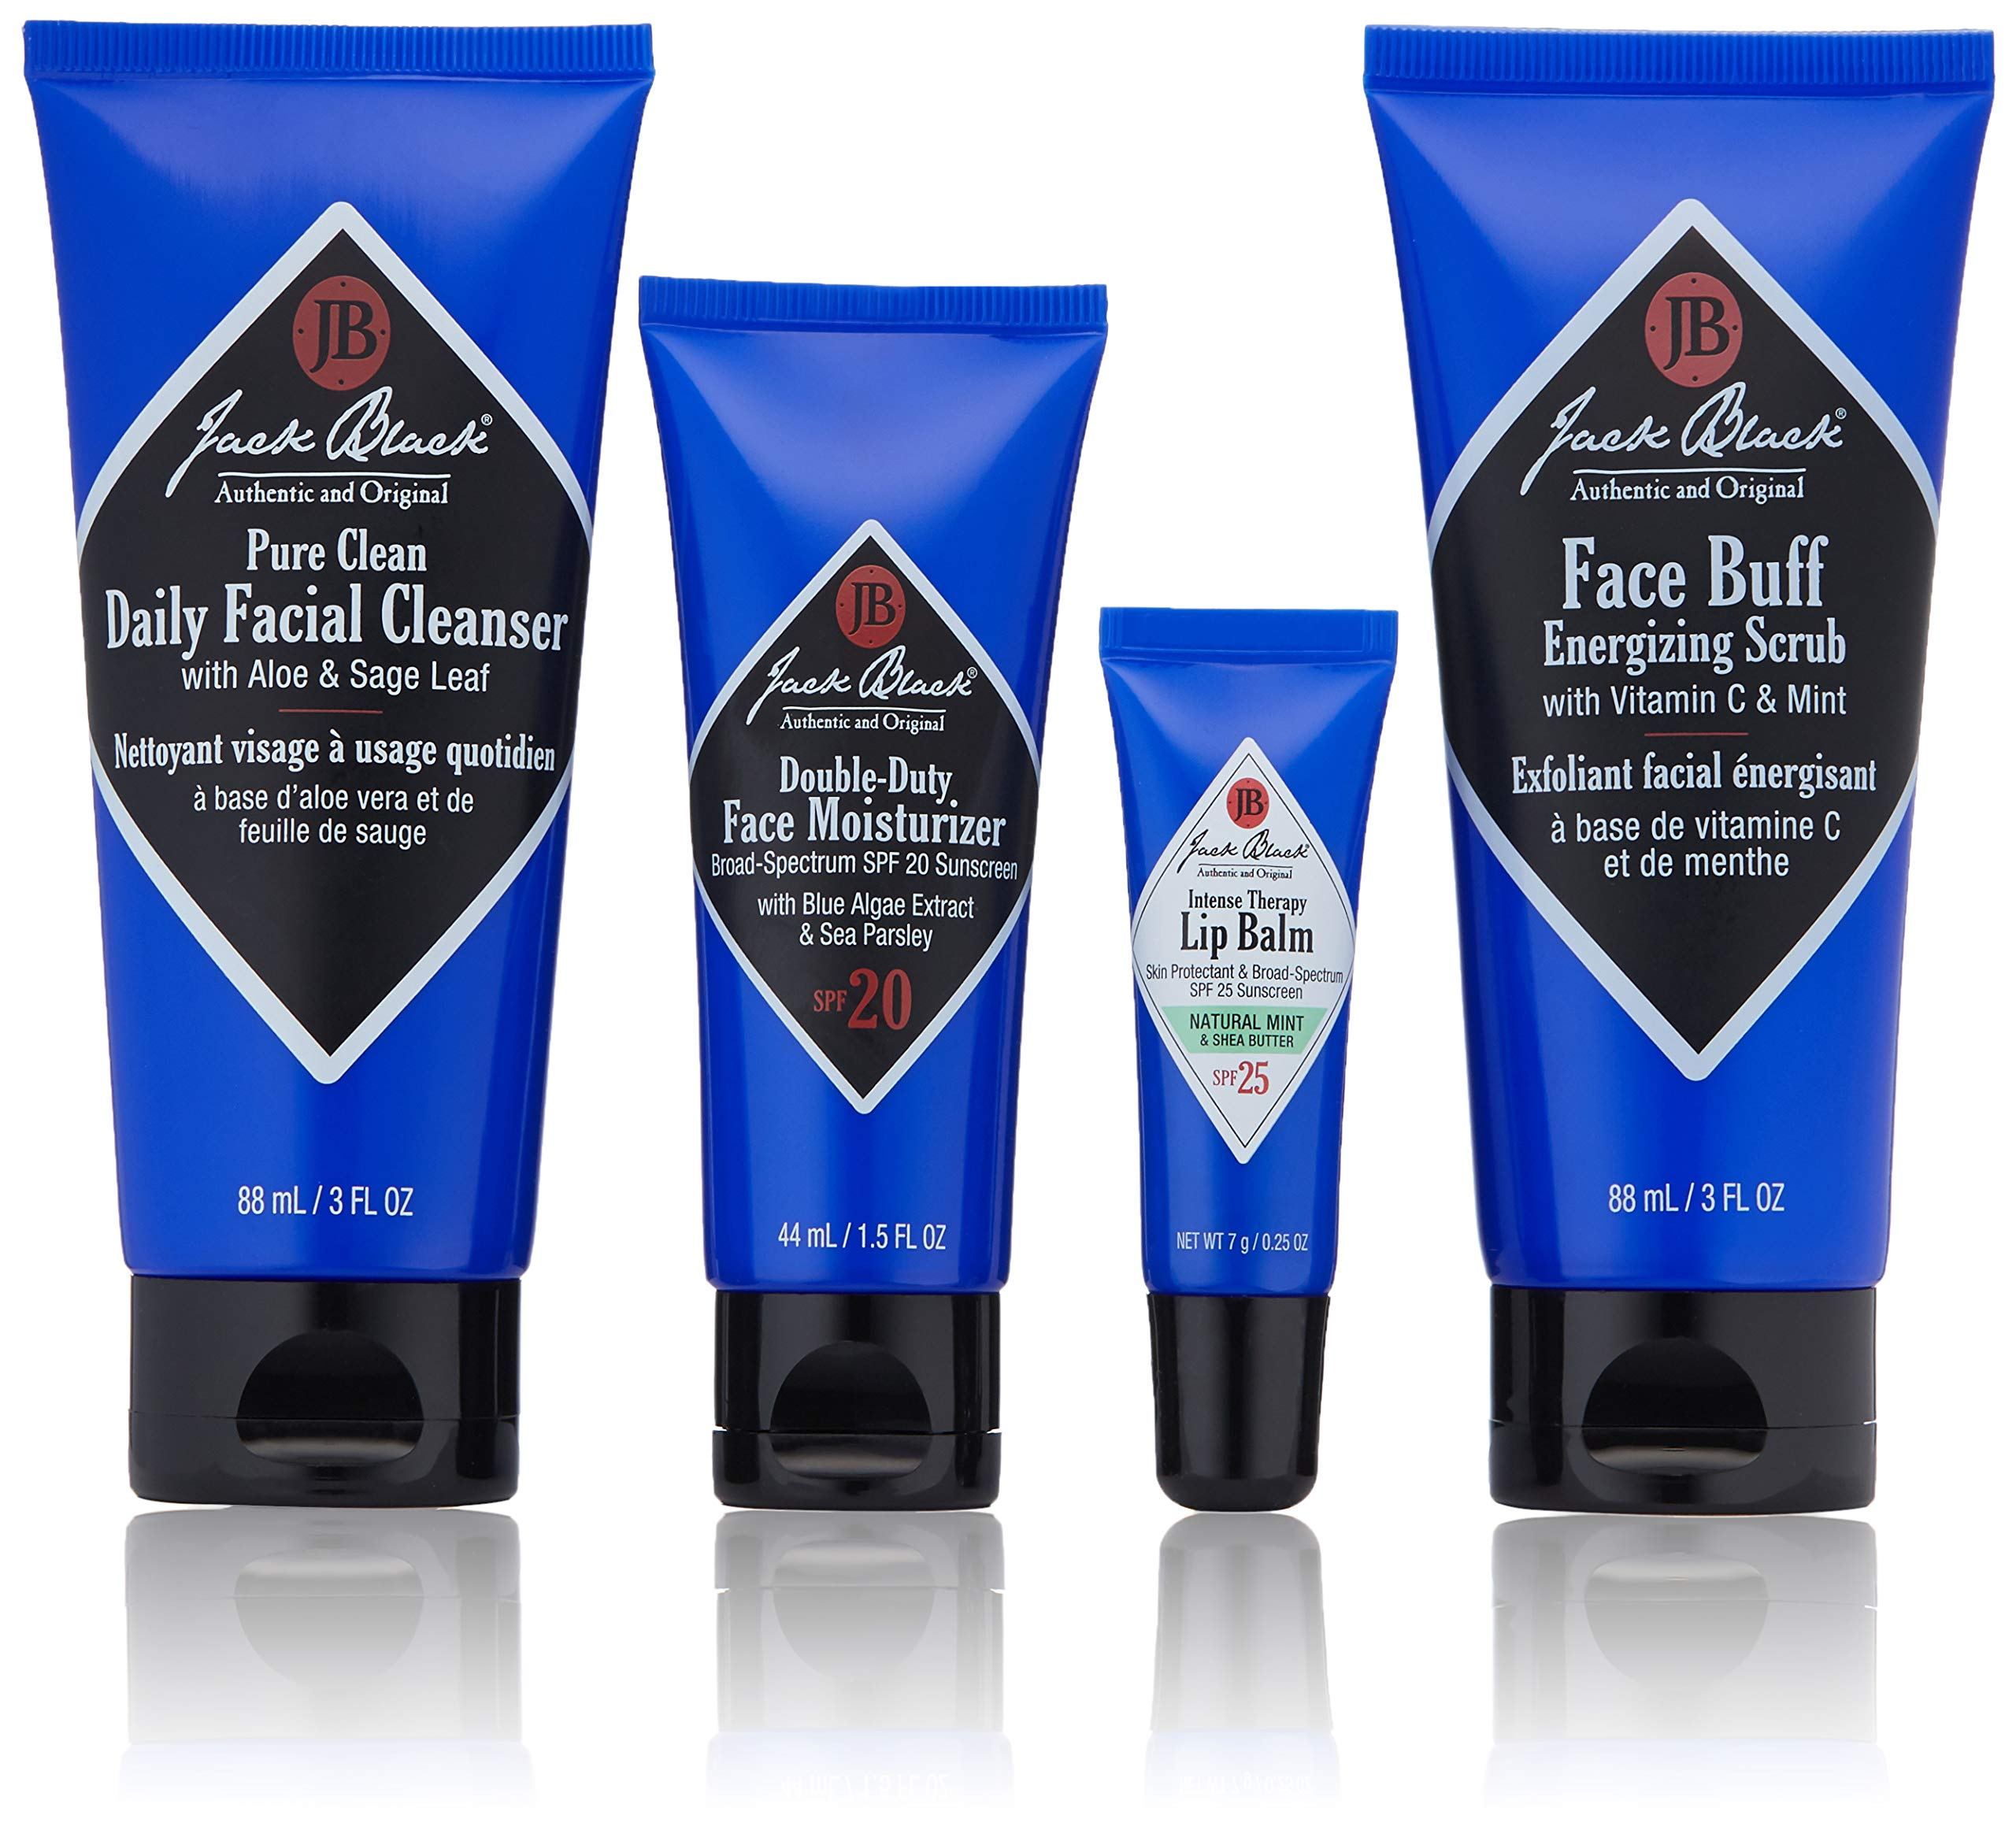 Jack Black - Skin Saviors Set - Pure Clean Daily Facial Cleanser, Face Buff Energizing Scrub, Double Duty Face Moisturizer SPF 20, Intense Therapy Lip Balm SPF 25, 4-Piece Kit by Jack Black